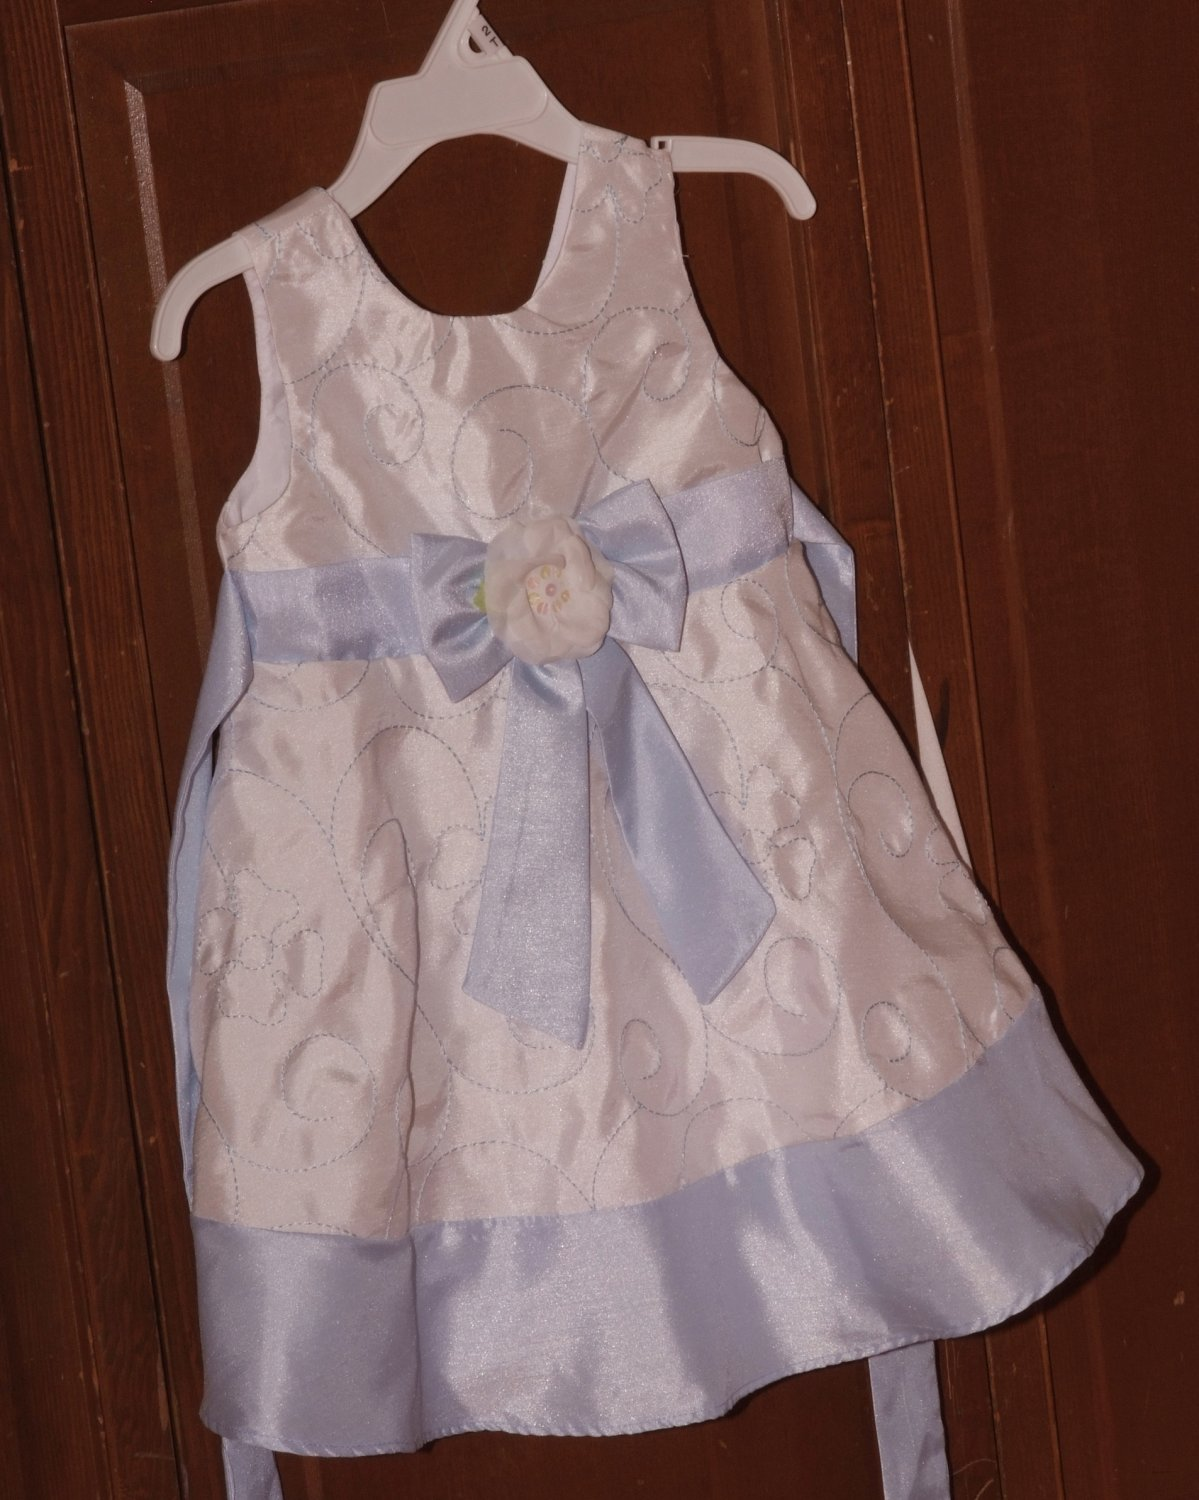 Light Blue & White Dress size 2T